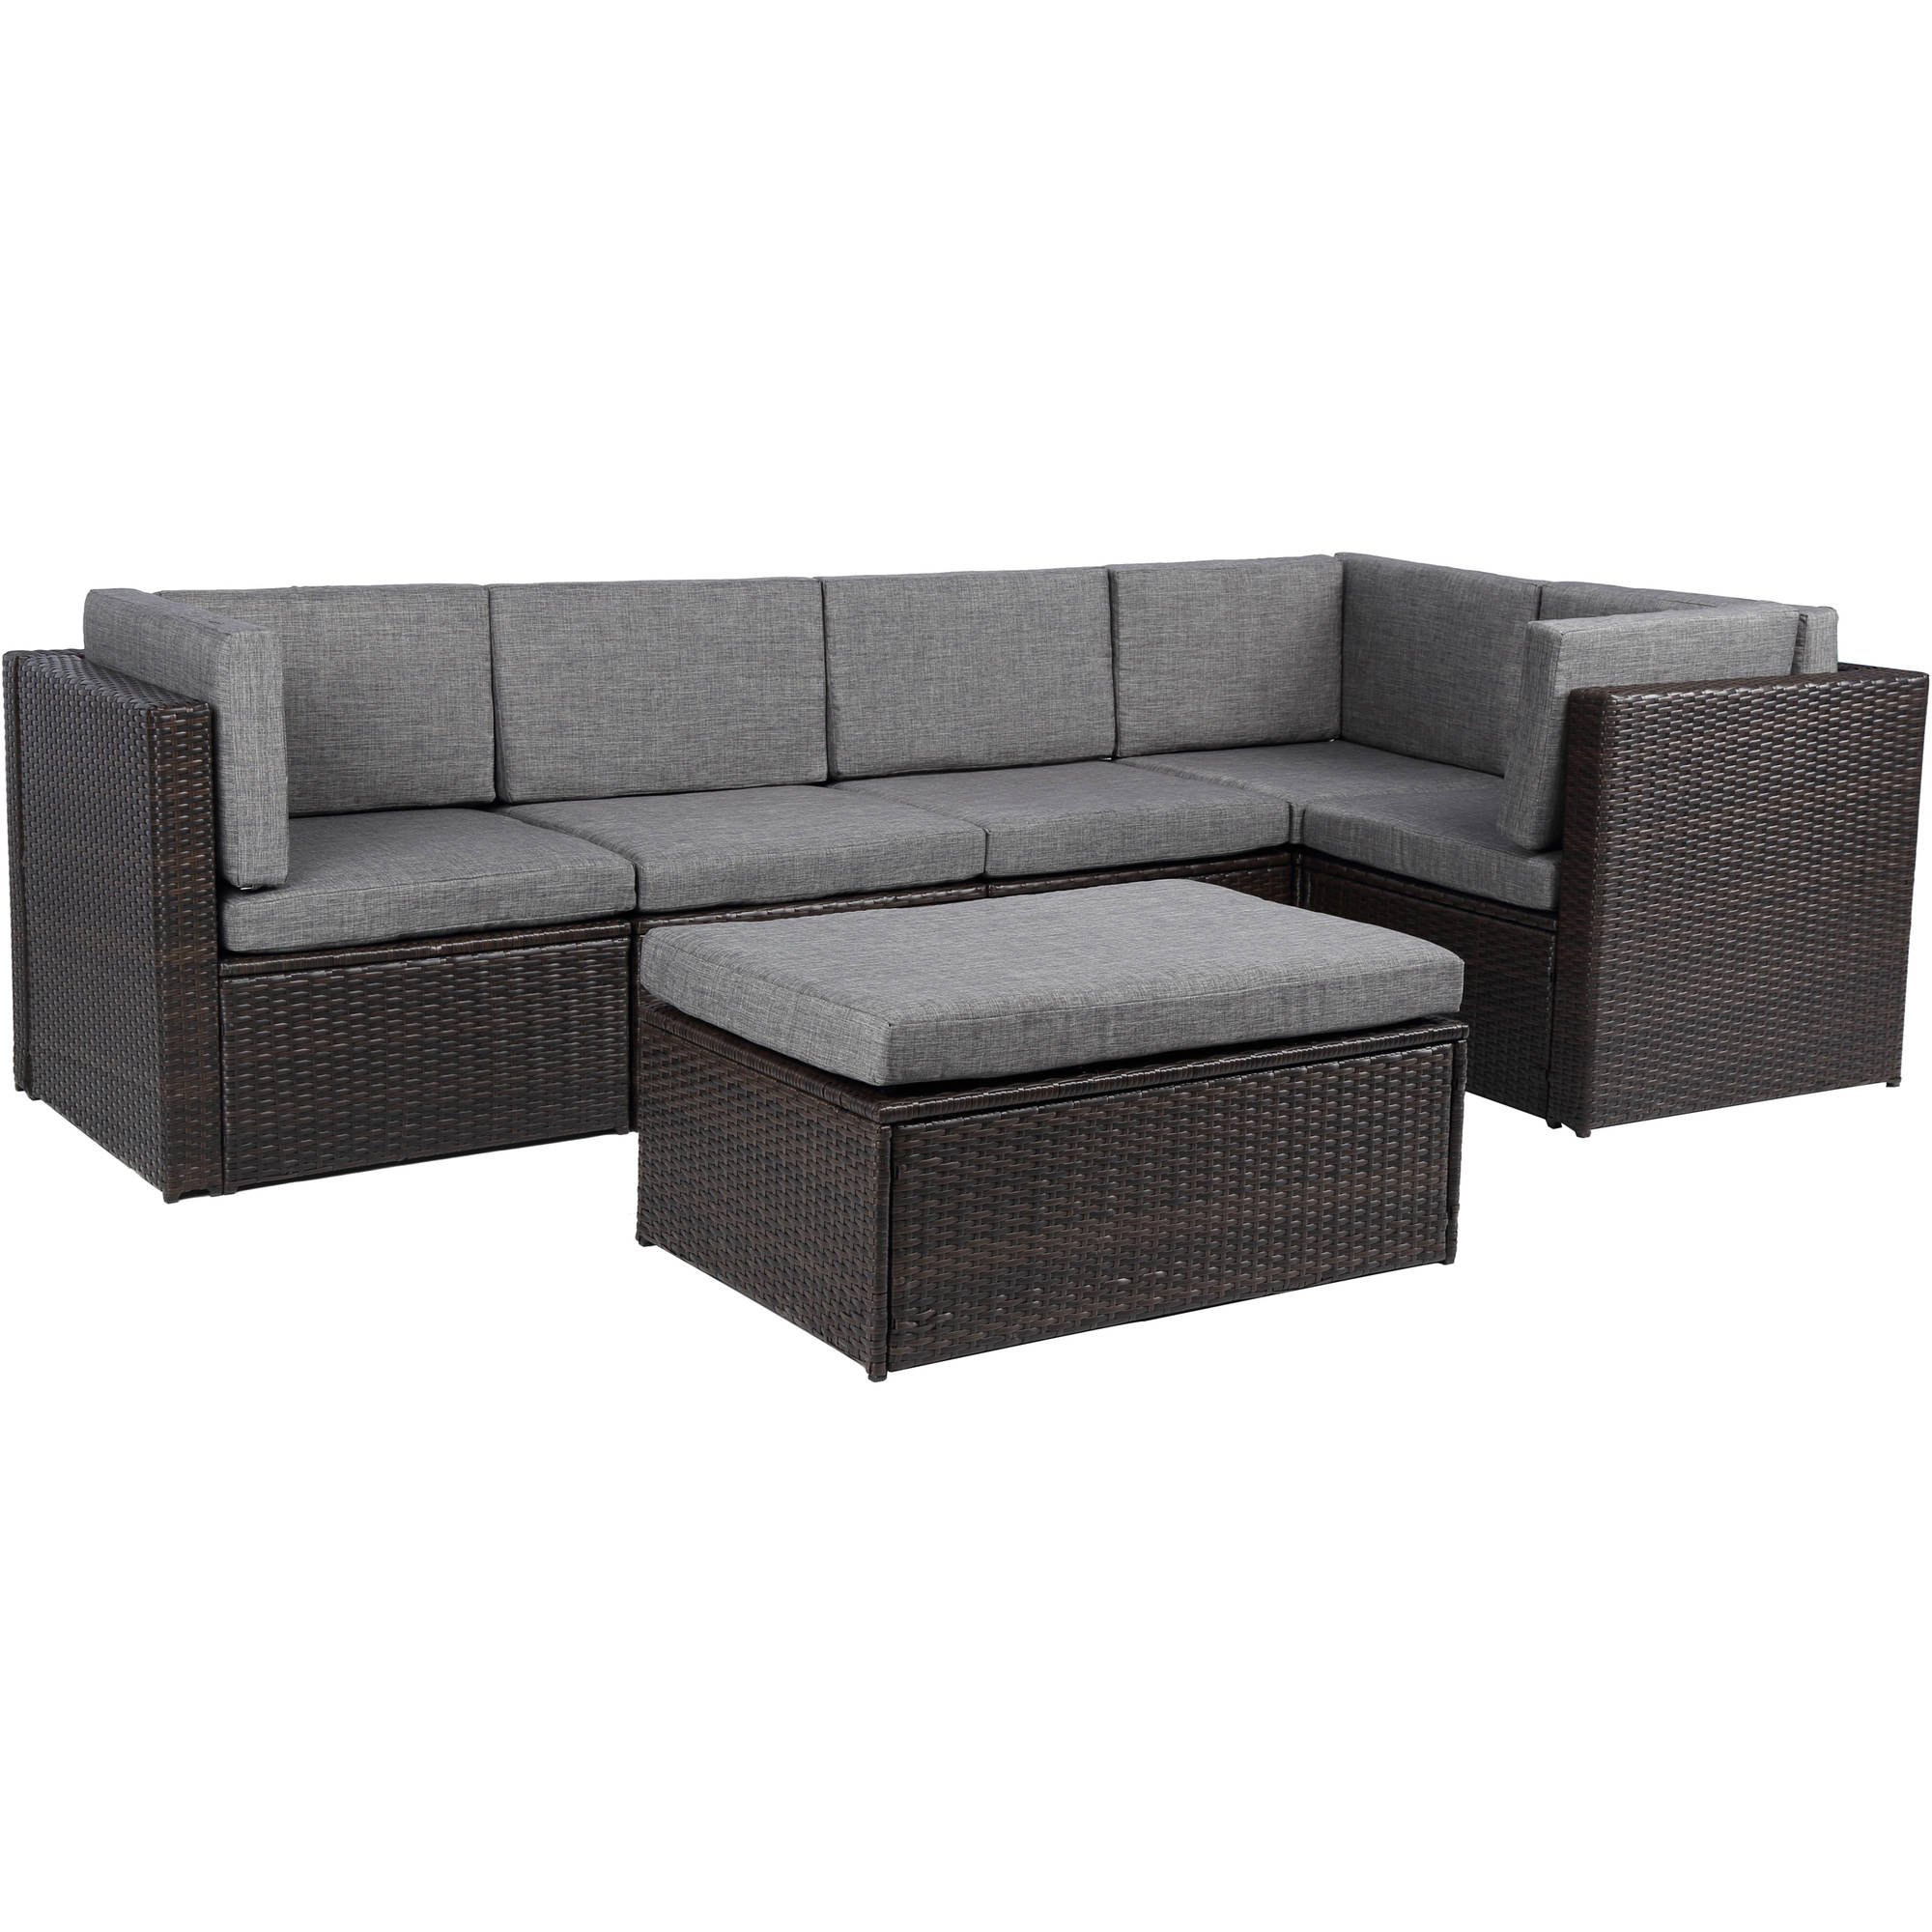 Baner Garden Outdoor Furniture Complete Patio Cushion PE Wicker Rattan Garden Corner Sofa... by